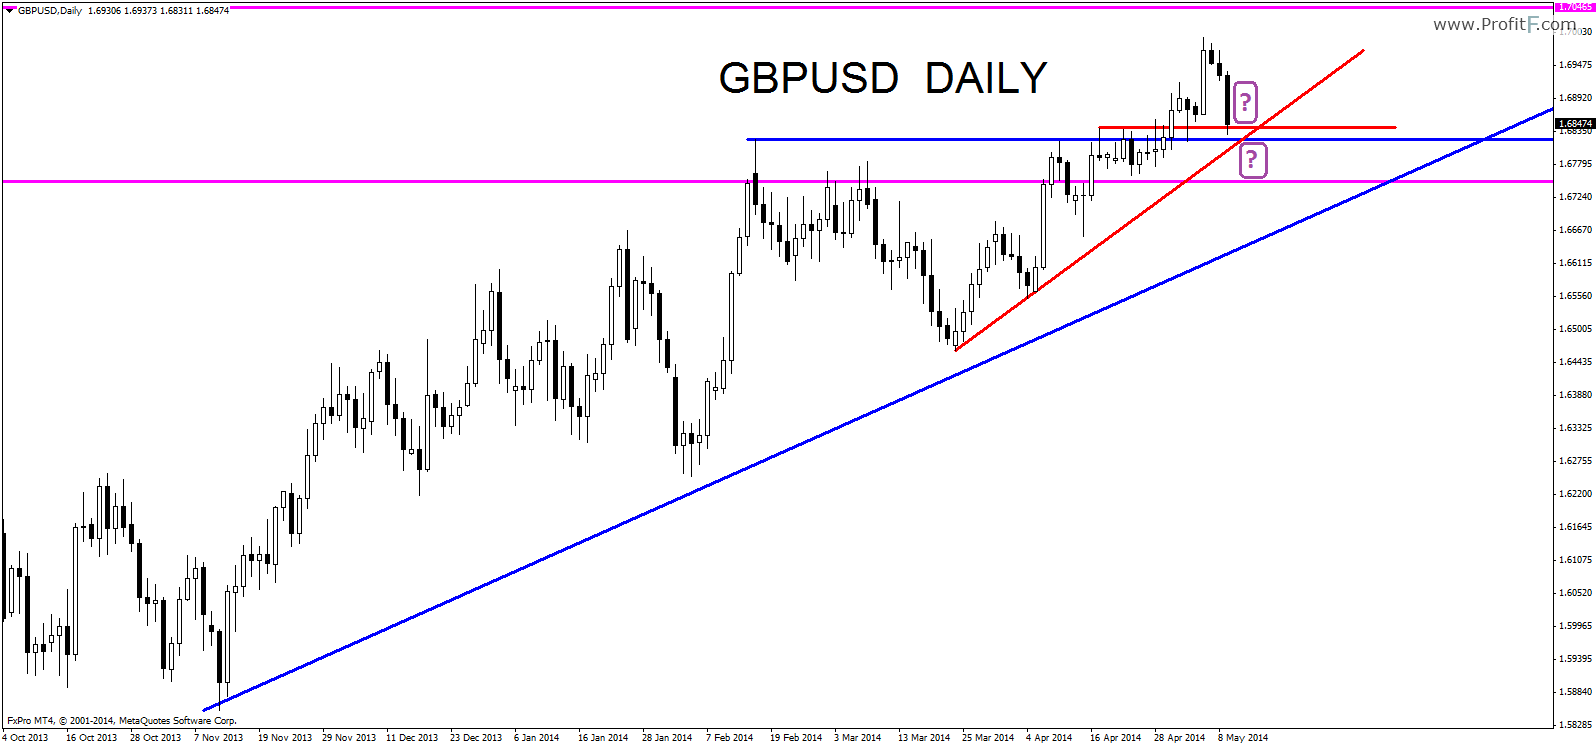 gbpusddaily11052014